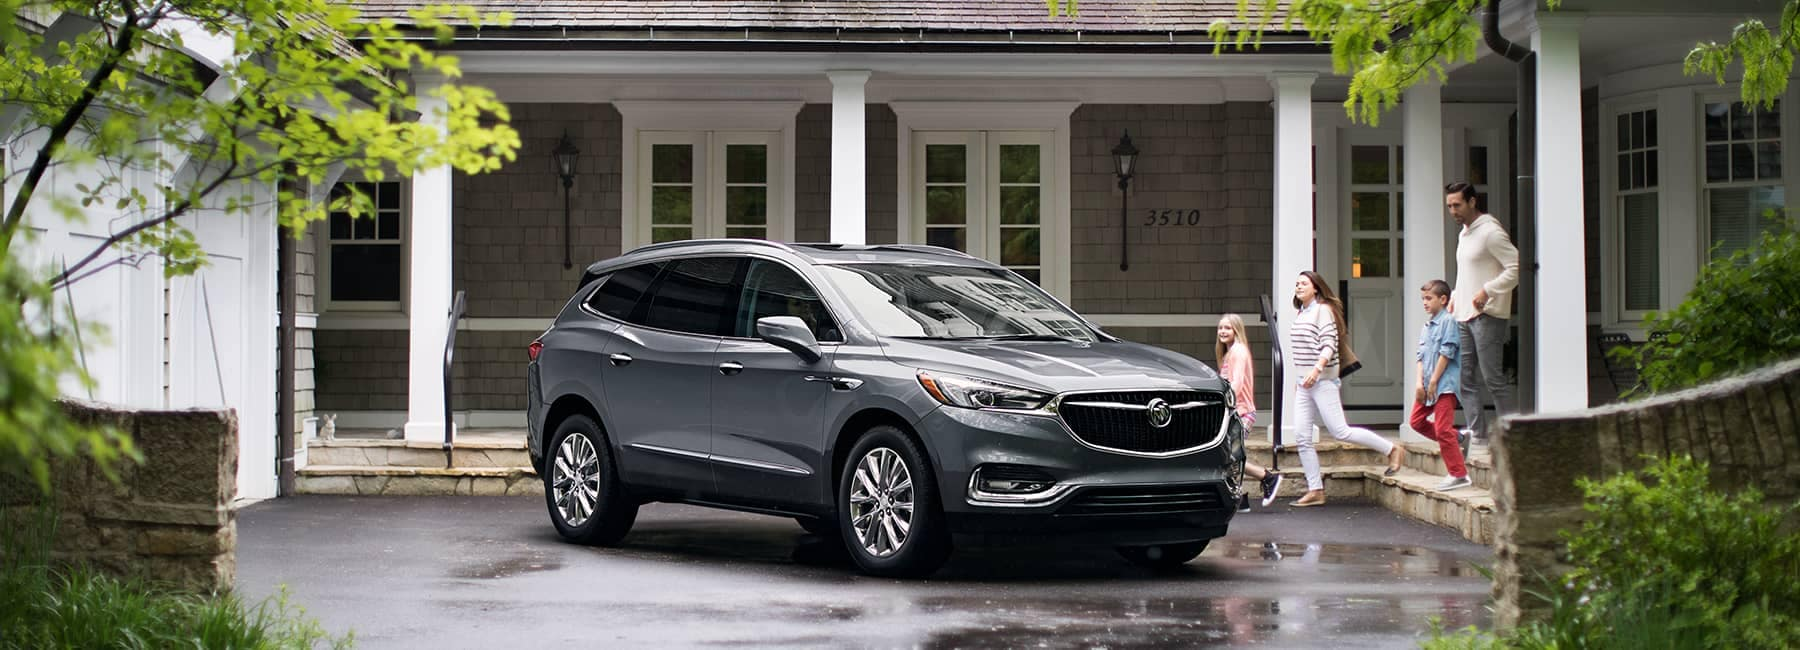 Grey 2020 Buick Enclave in Front of a House